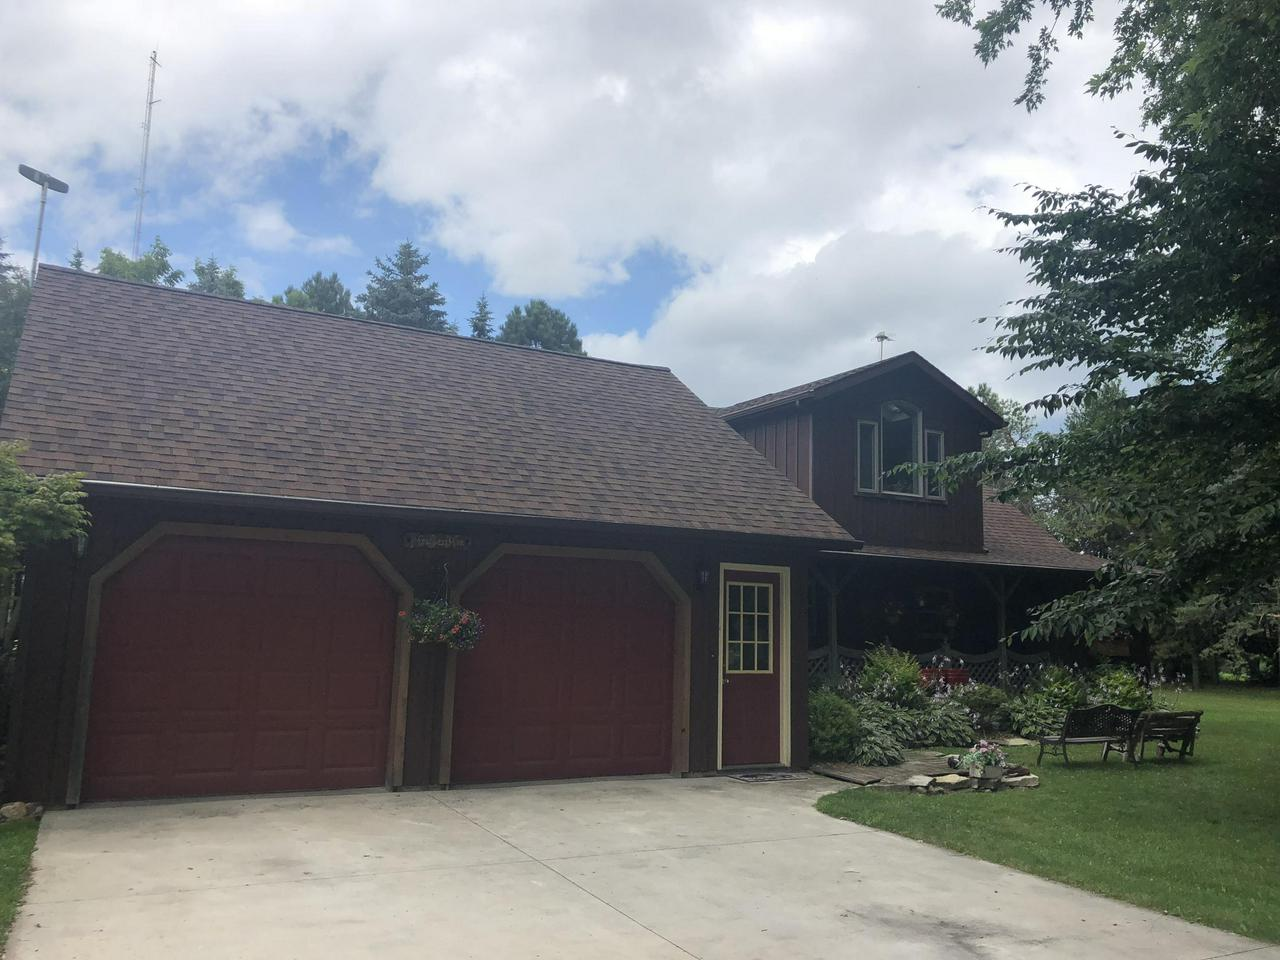 Imagine being able to live minutes from town, while being tucked back in the privacy of your very own 2 acres. This hobby farm is ideal for horses with a barn measuring 9ft, 9ftin length, 19 ft wide and 19 ft. high. The indoor horse arena is a large steel building (40x72) with 2 stalls and a loft above. There are 2 water pumps, one on the inside and one on the outside. On the inside of this 3 bedroom, 2 bath home you will walk into beautiful country charm; hardwoods, exposed chimney, breakfast bar, open staircase and wood beams throughout. A total of 4 garages on this property.  Come and check out this once in a lifetime opportunity before its too late.